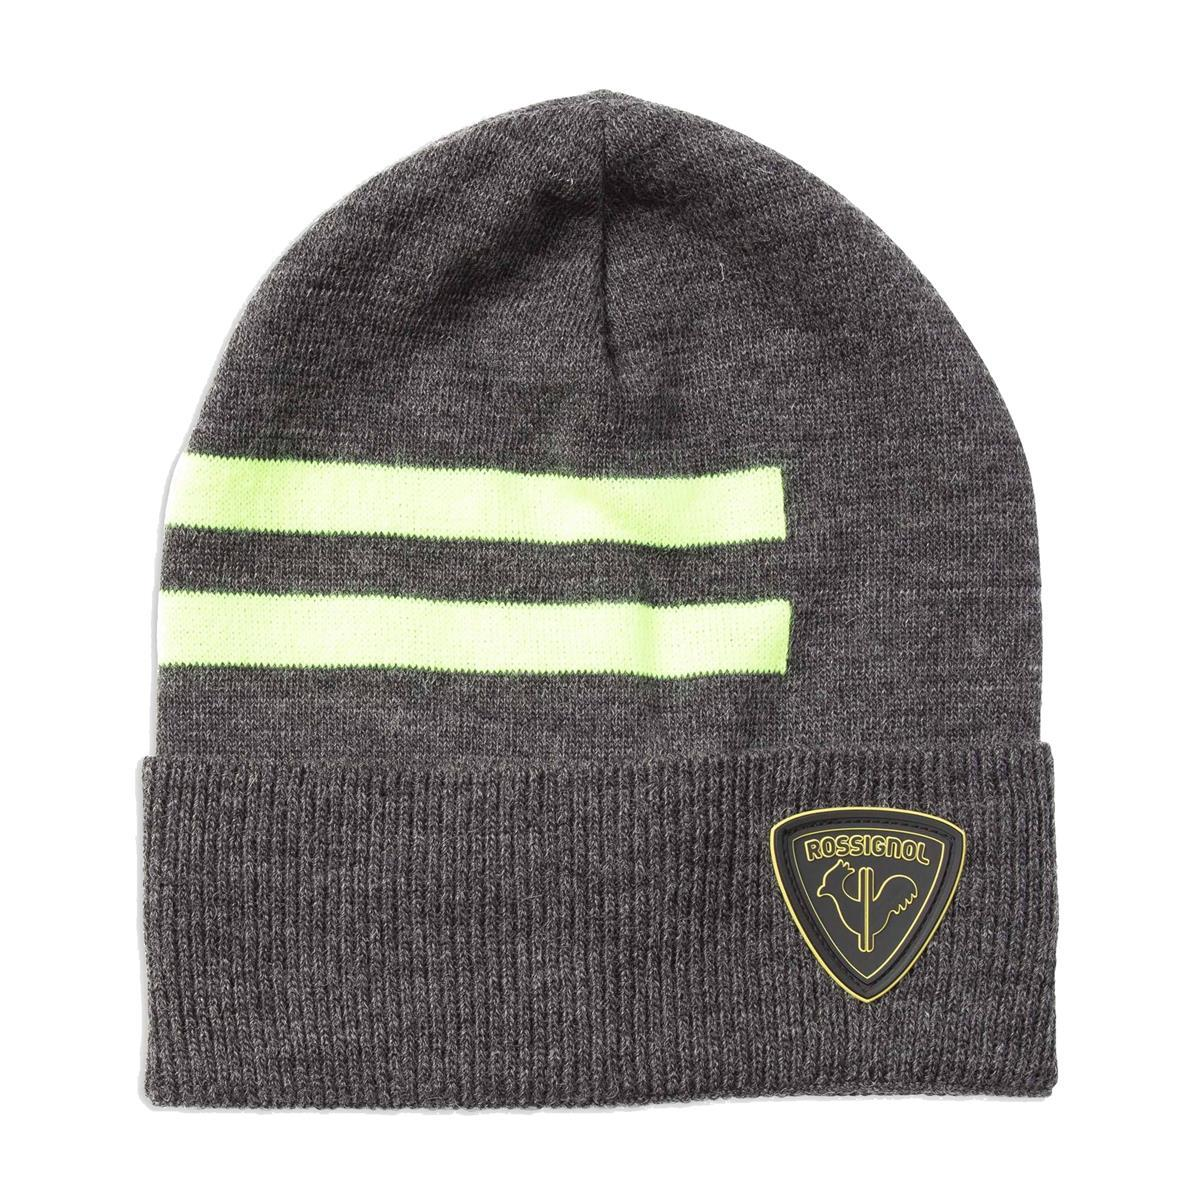 Rossignol Apparel OPS Beanie